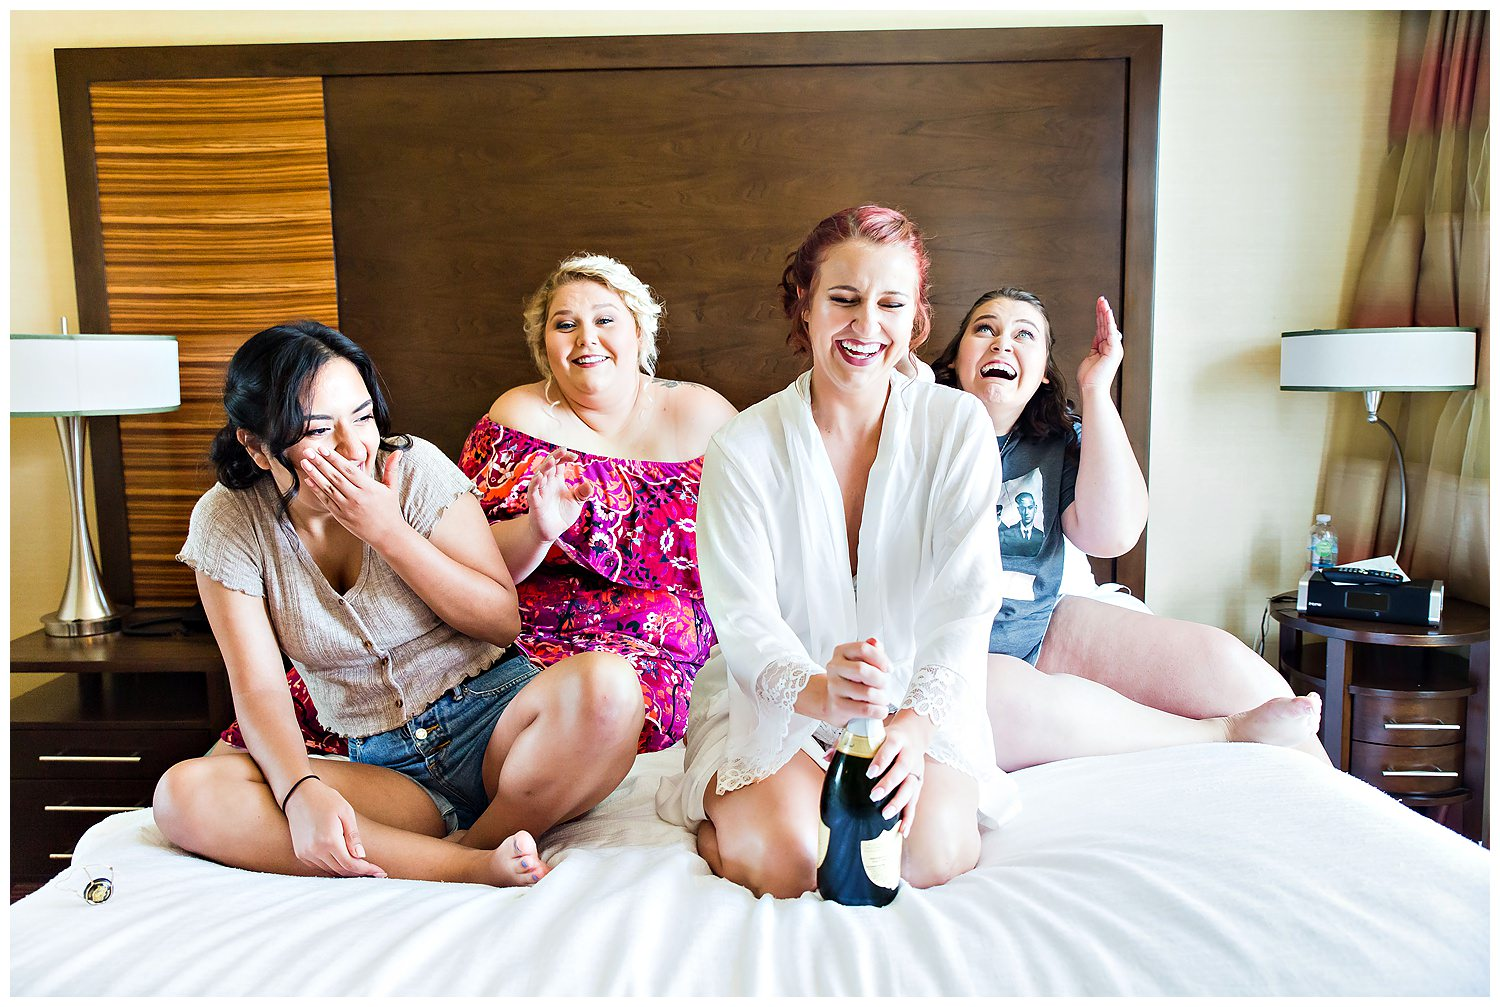 Champagne toast on bed